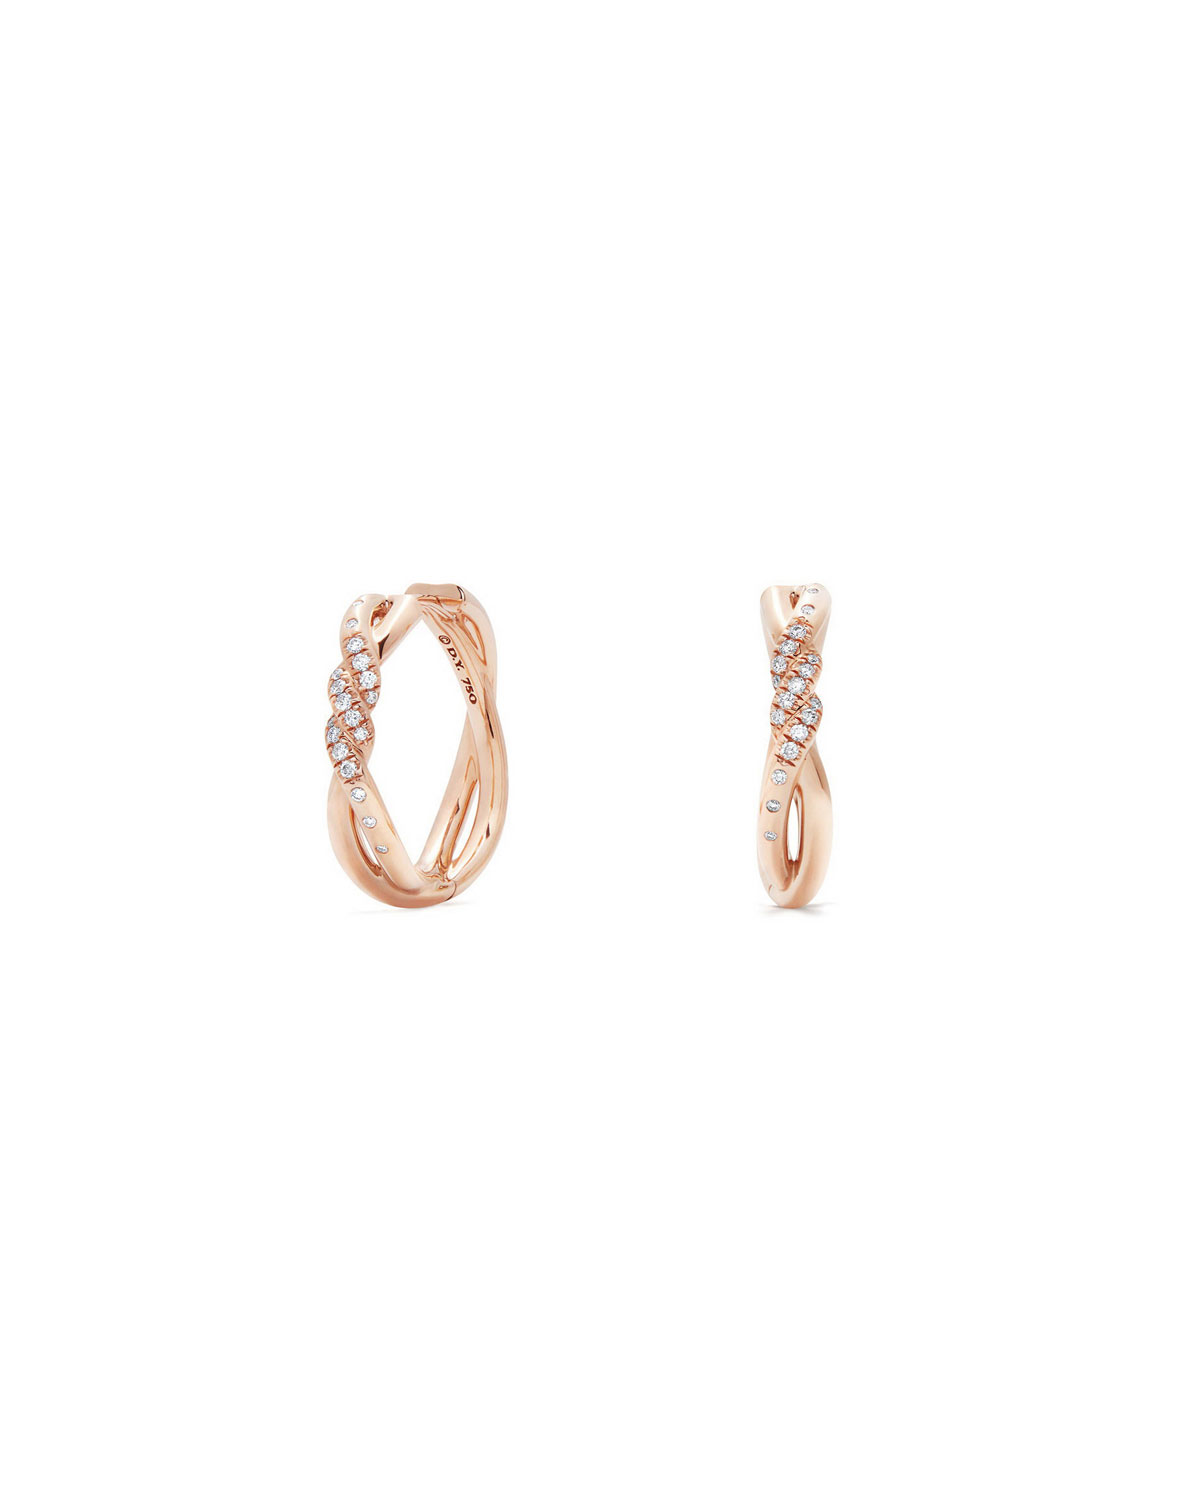 21mm Continuance 18k Rose Gold Hoop Earrings With Diamonds